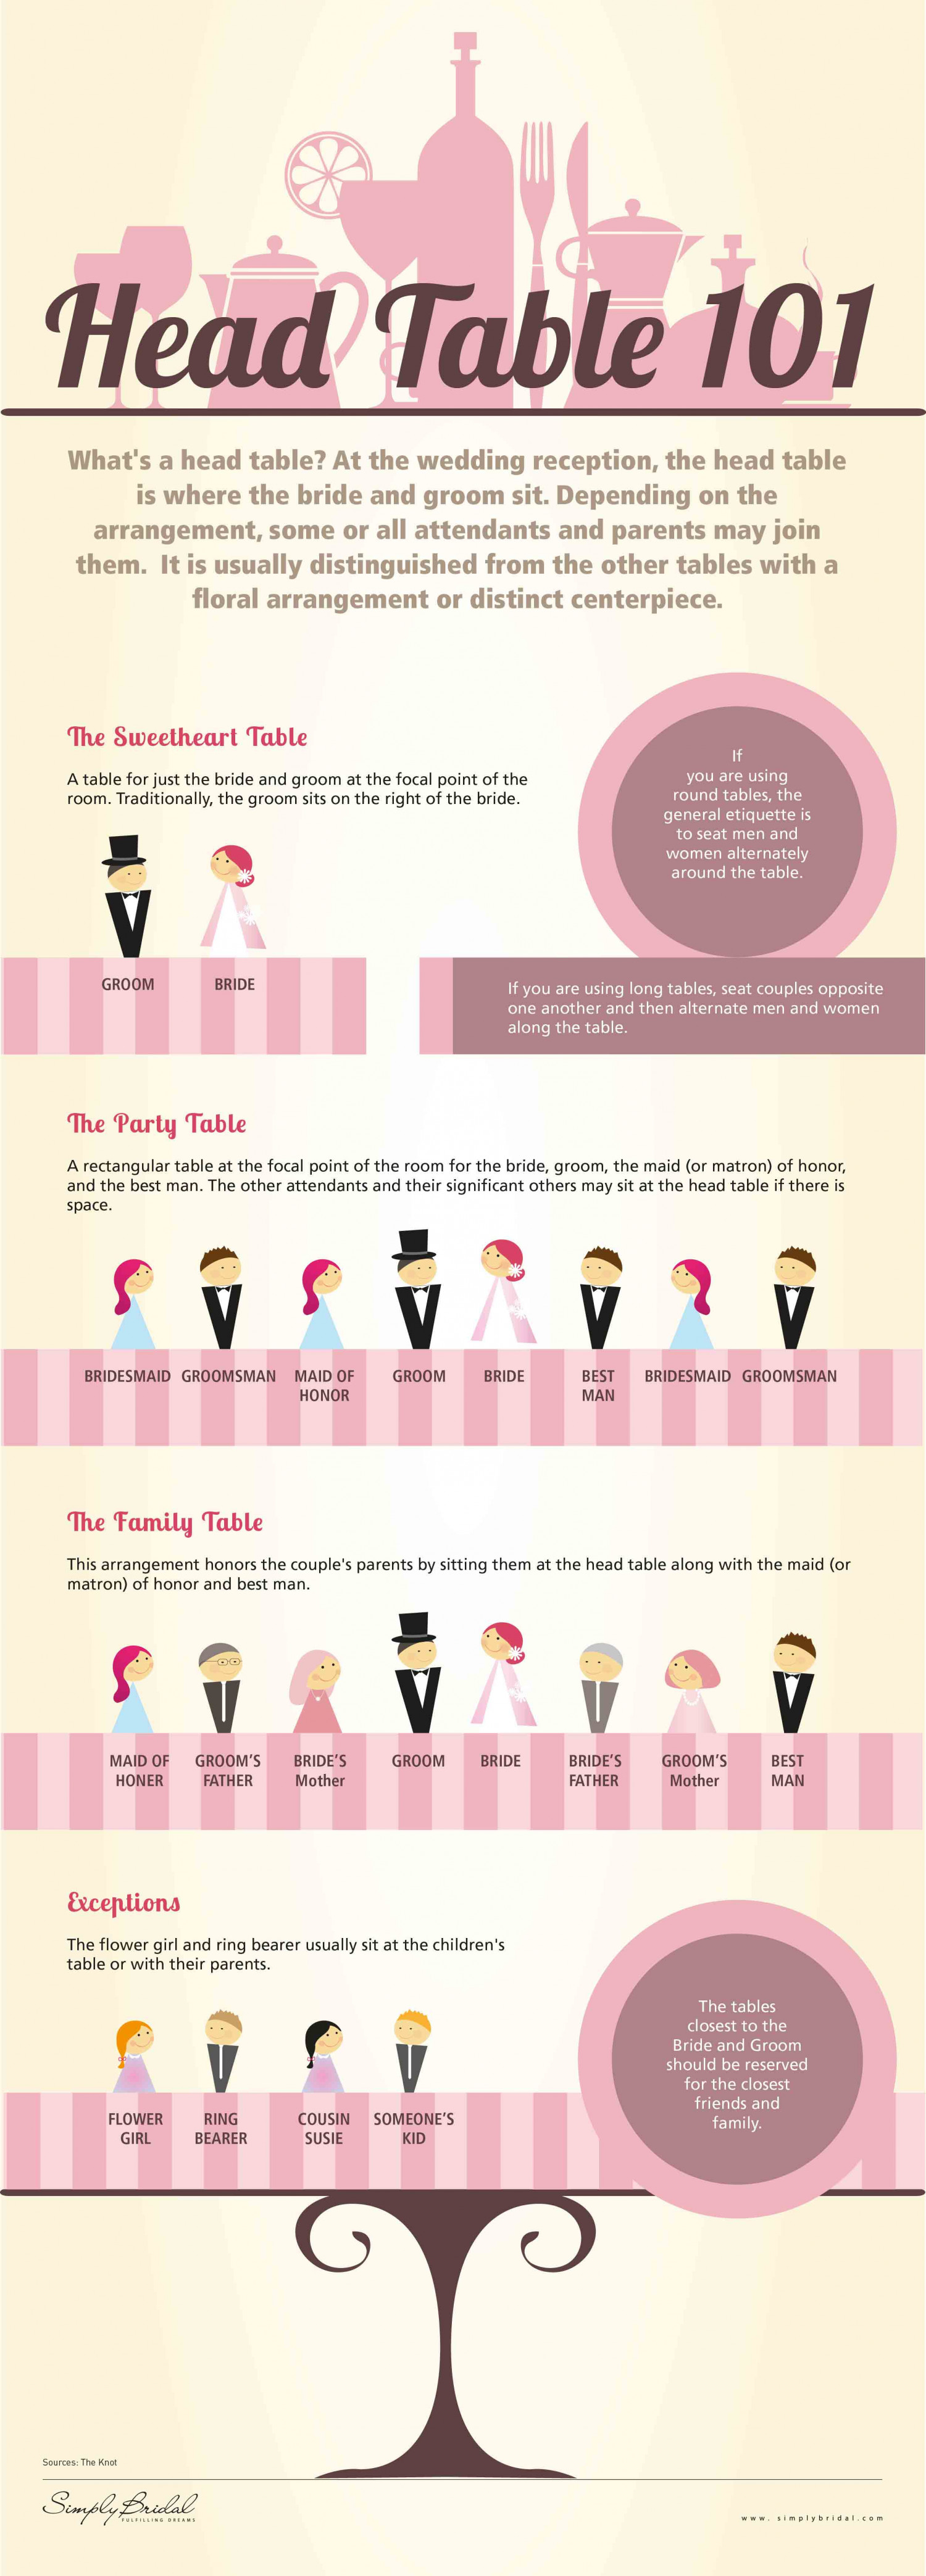 Head Table 101 Infographic